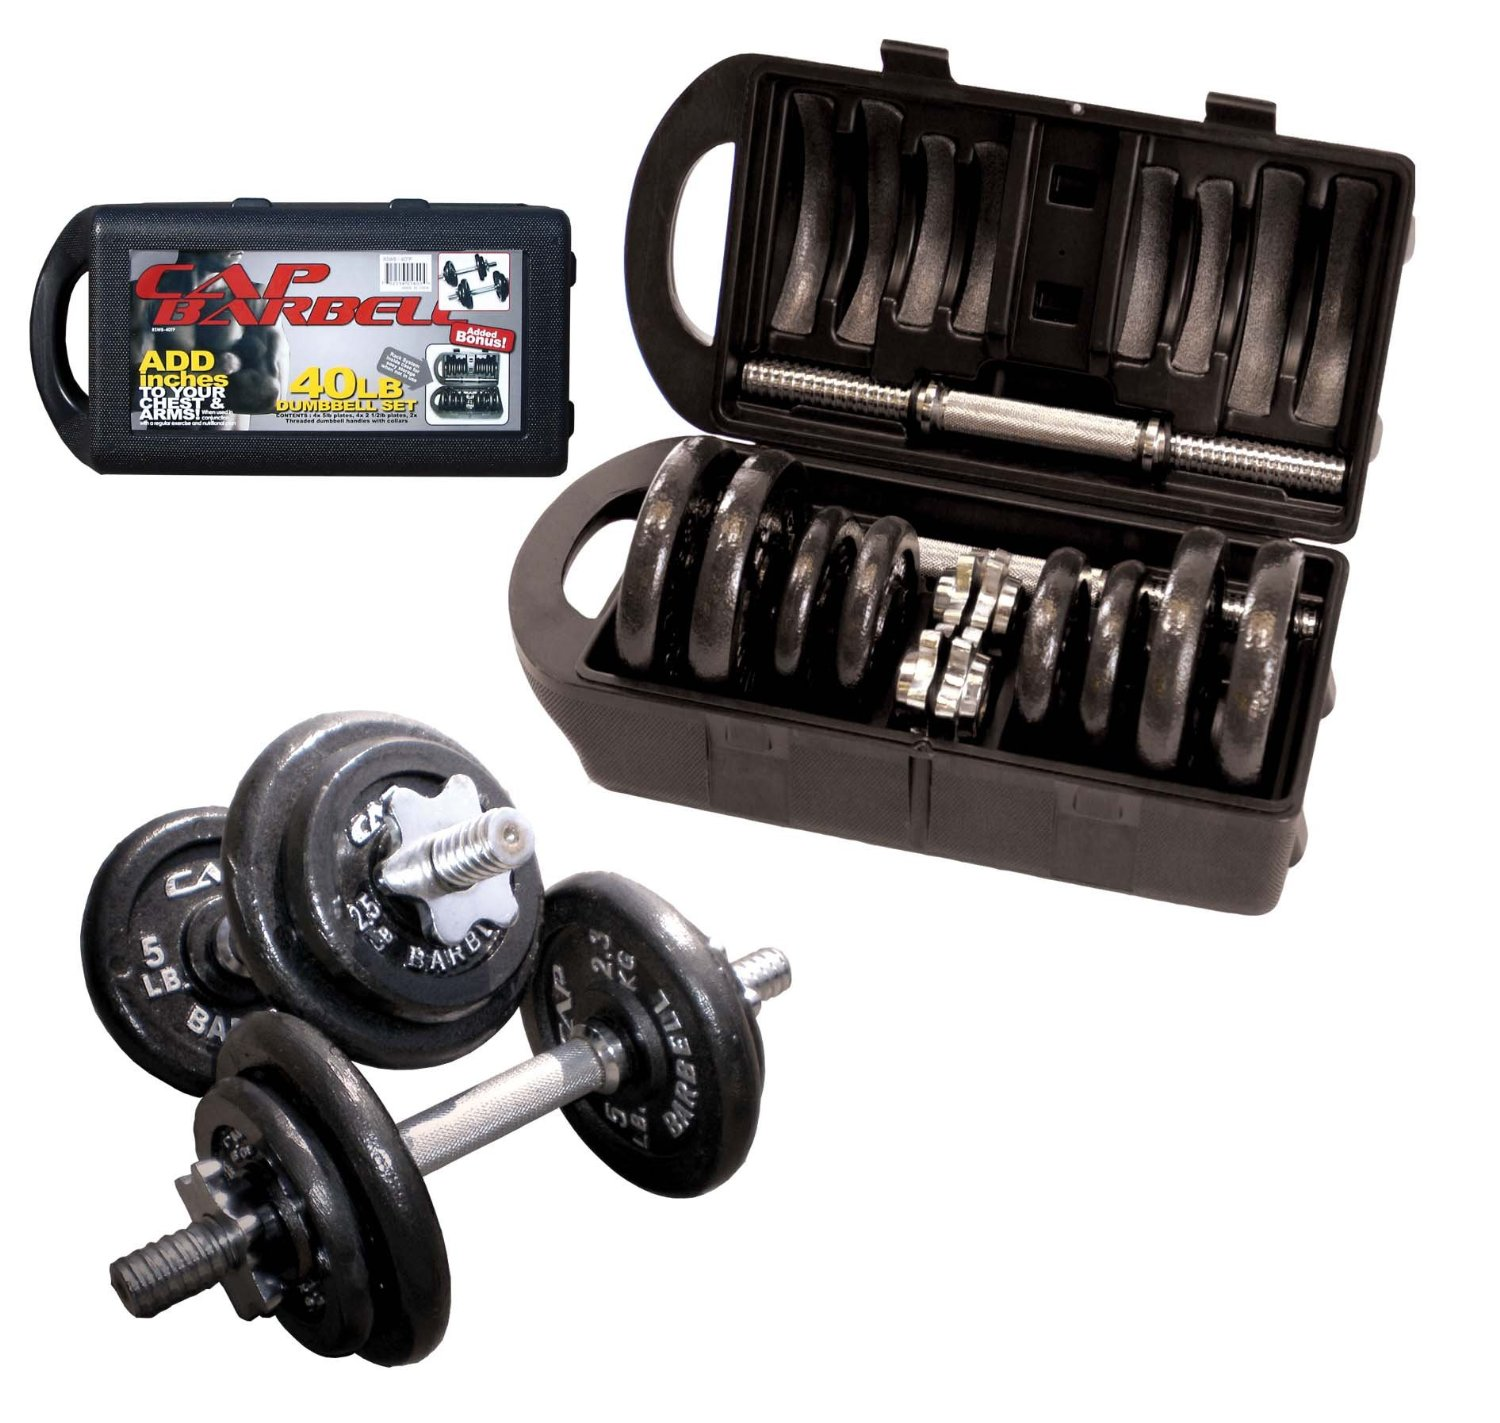 CAP Barbell 40-pound Adjustable Dumbbell Set with Case (1)